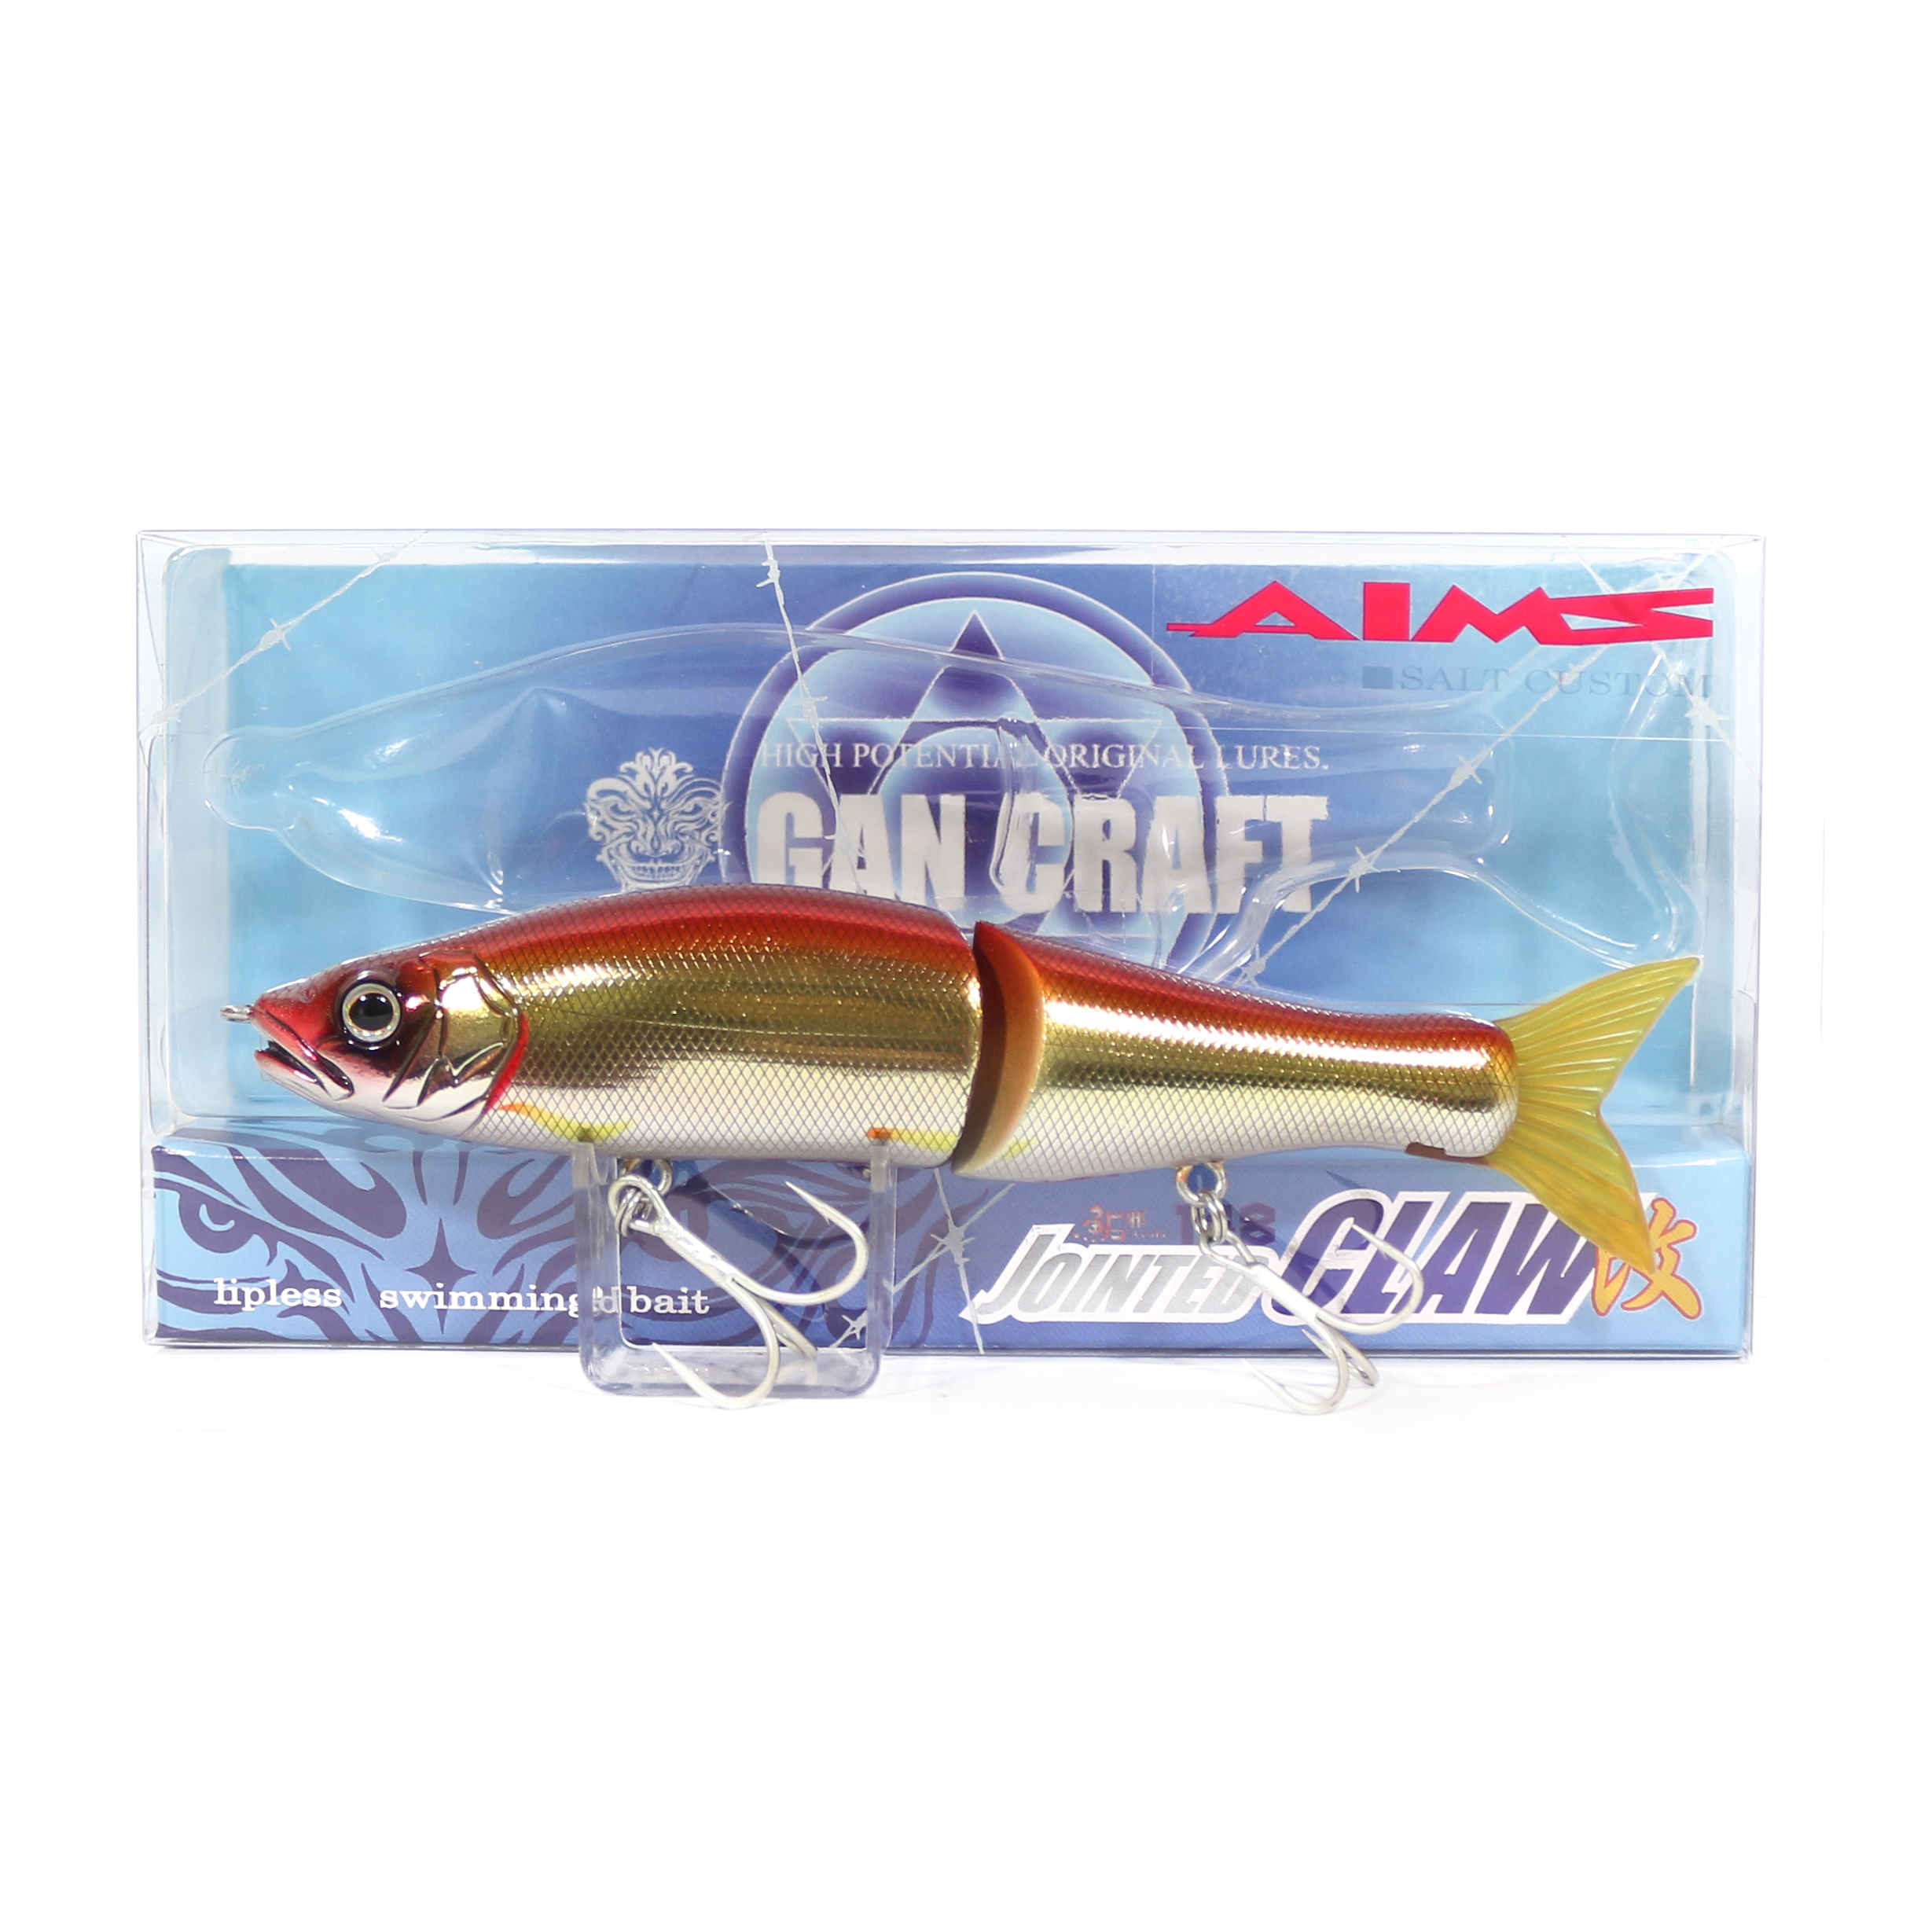 Gan Craft Jointed Claw 148S Salt Slow Sinking Jointed Lure AS-05 (0205)